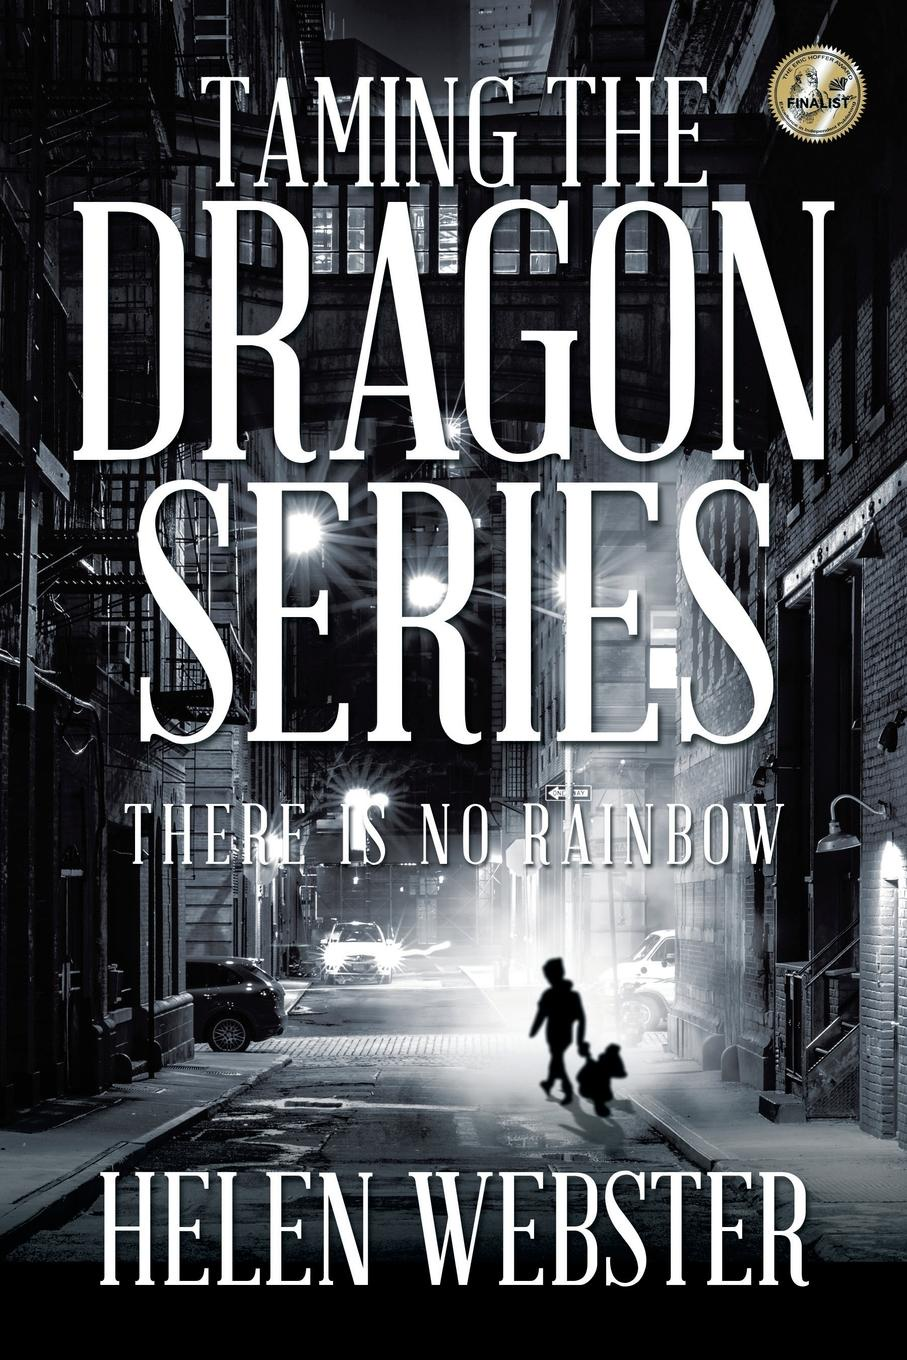 Helen Webster Taming the Dragon Series. There Is No Rainbow